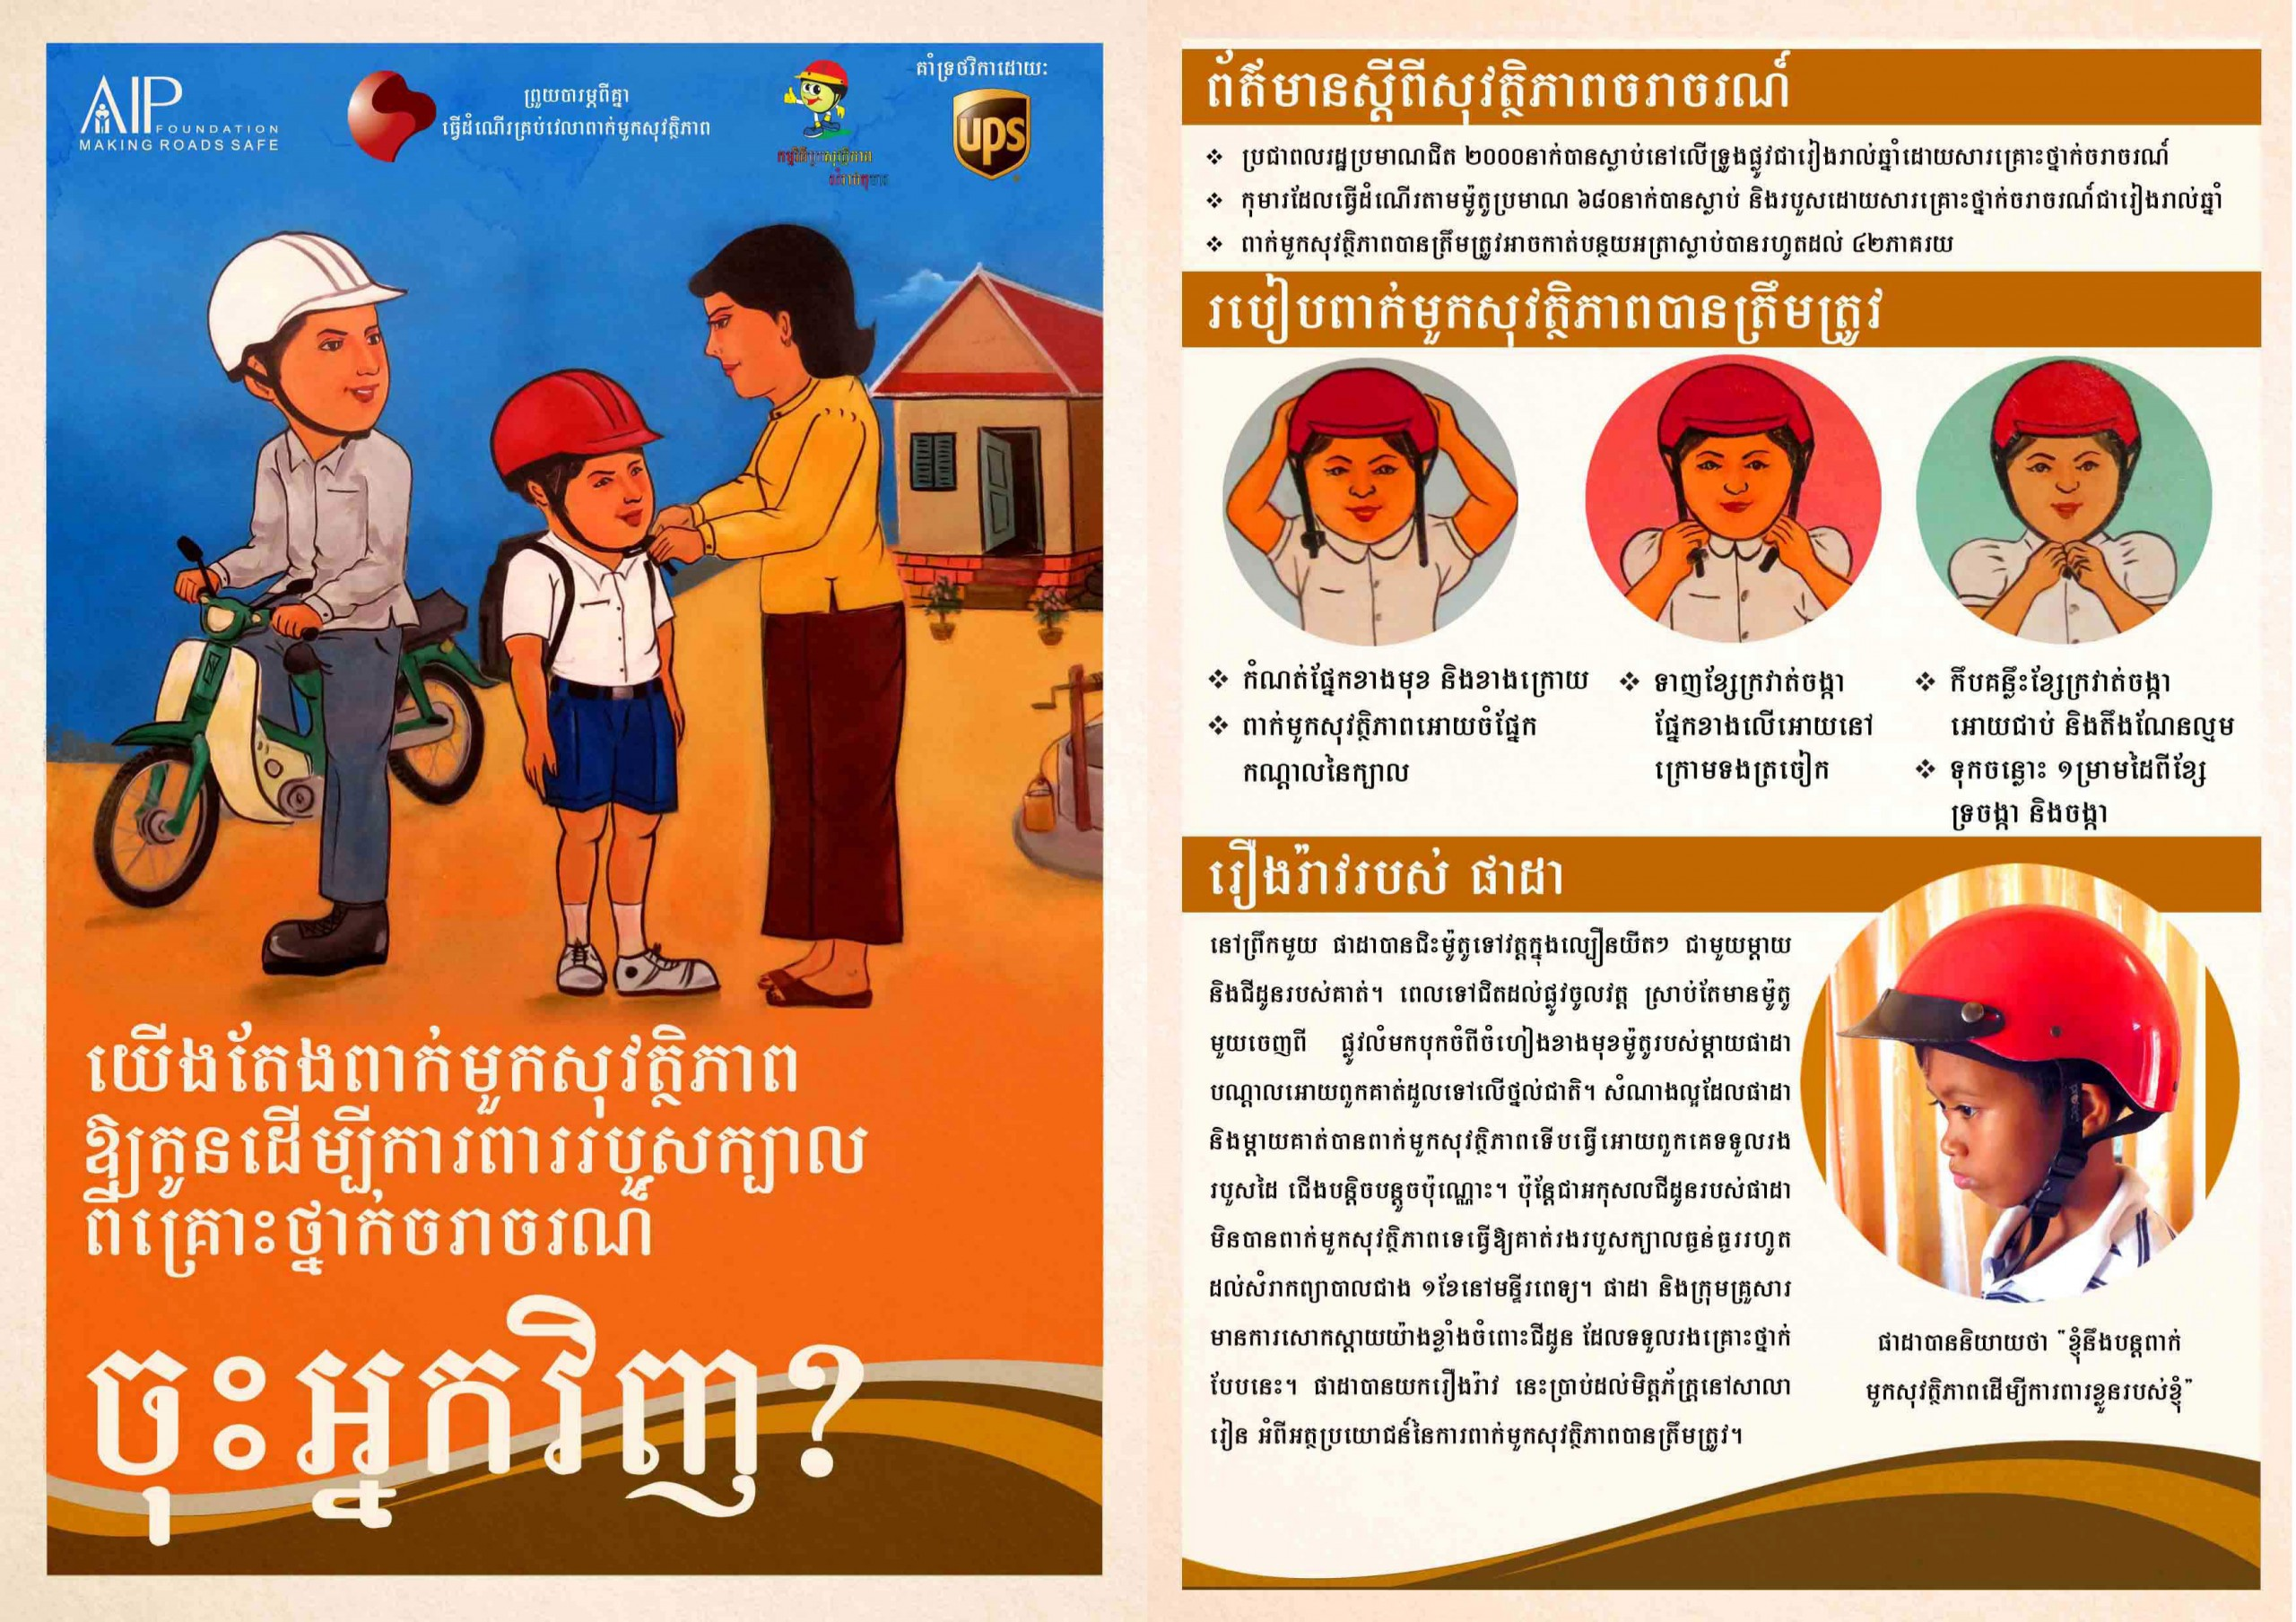 Helmet use flyer supported by UPS Foundation